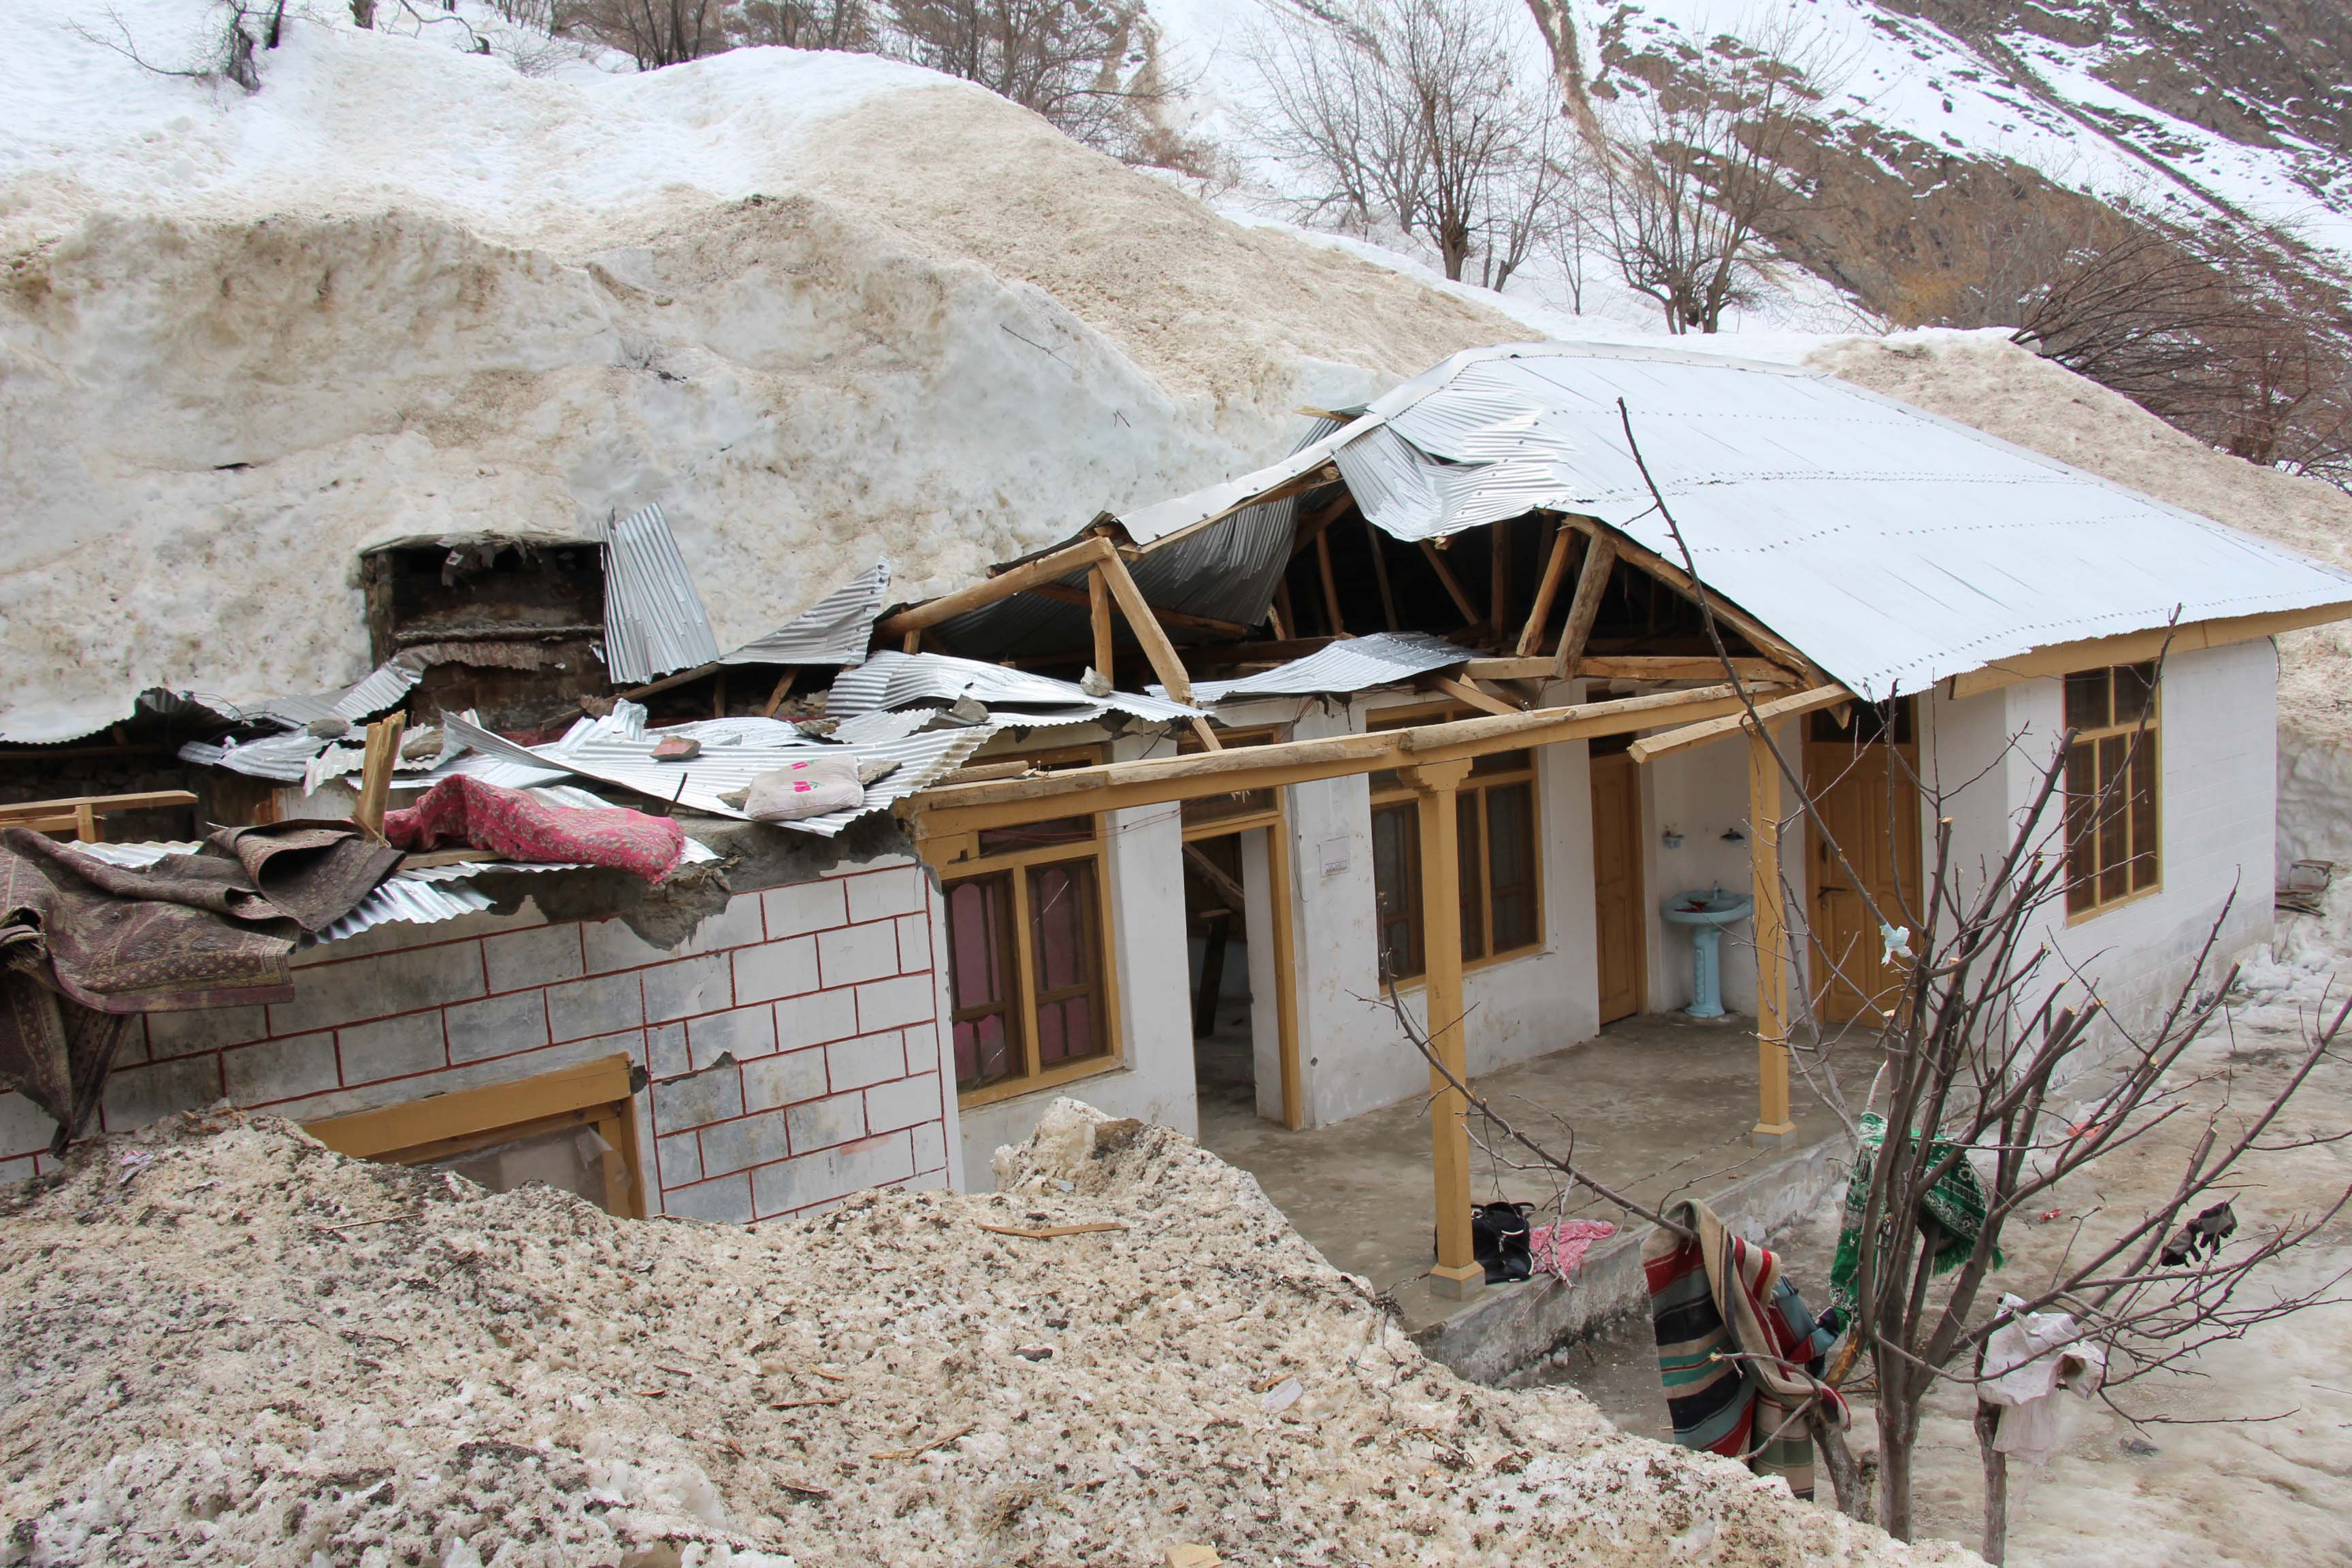 100 years old man waits for help after house is destroyed by snow avalanche